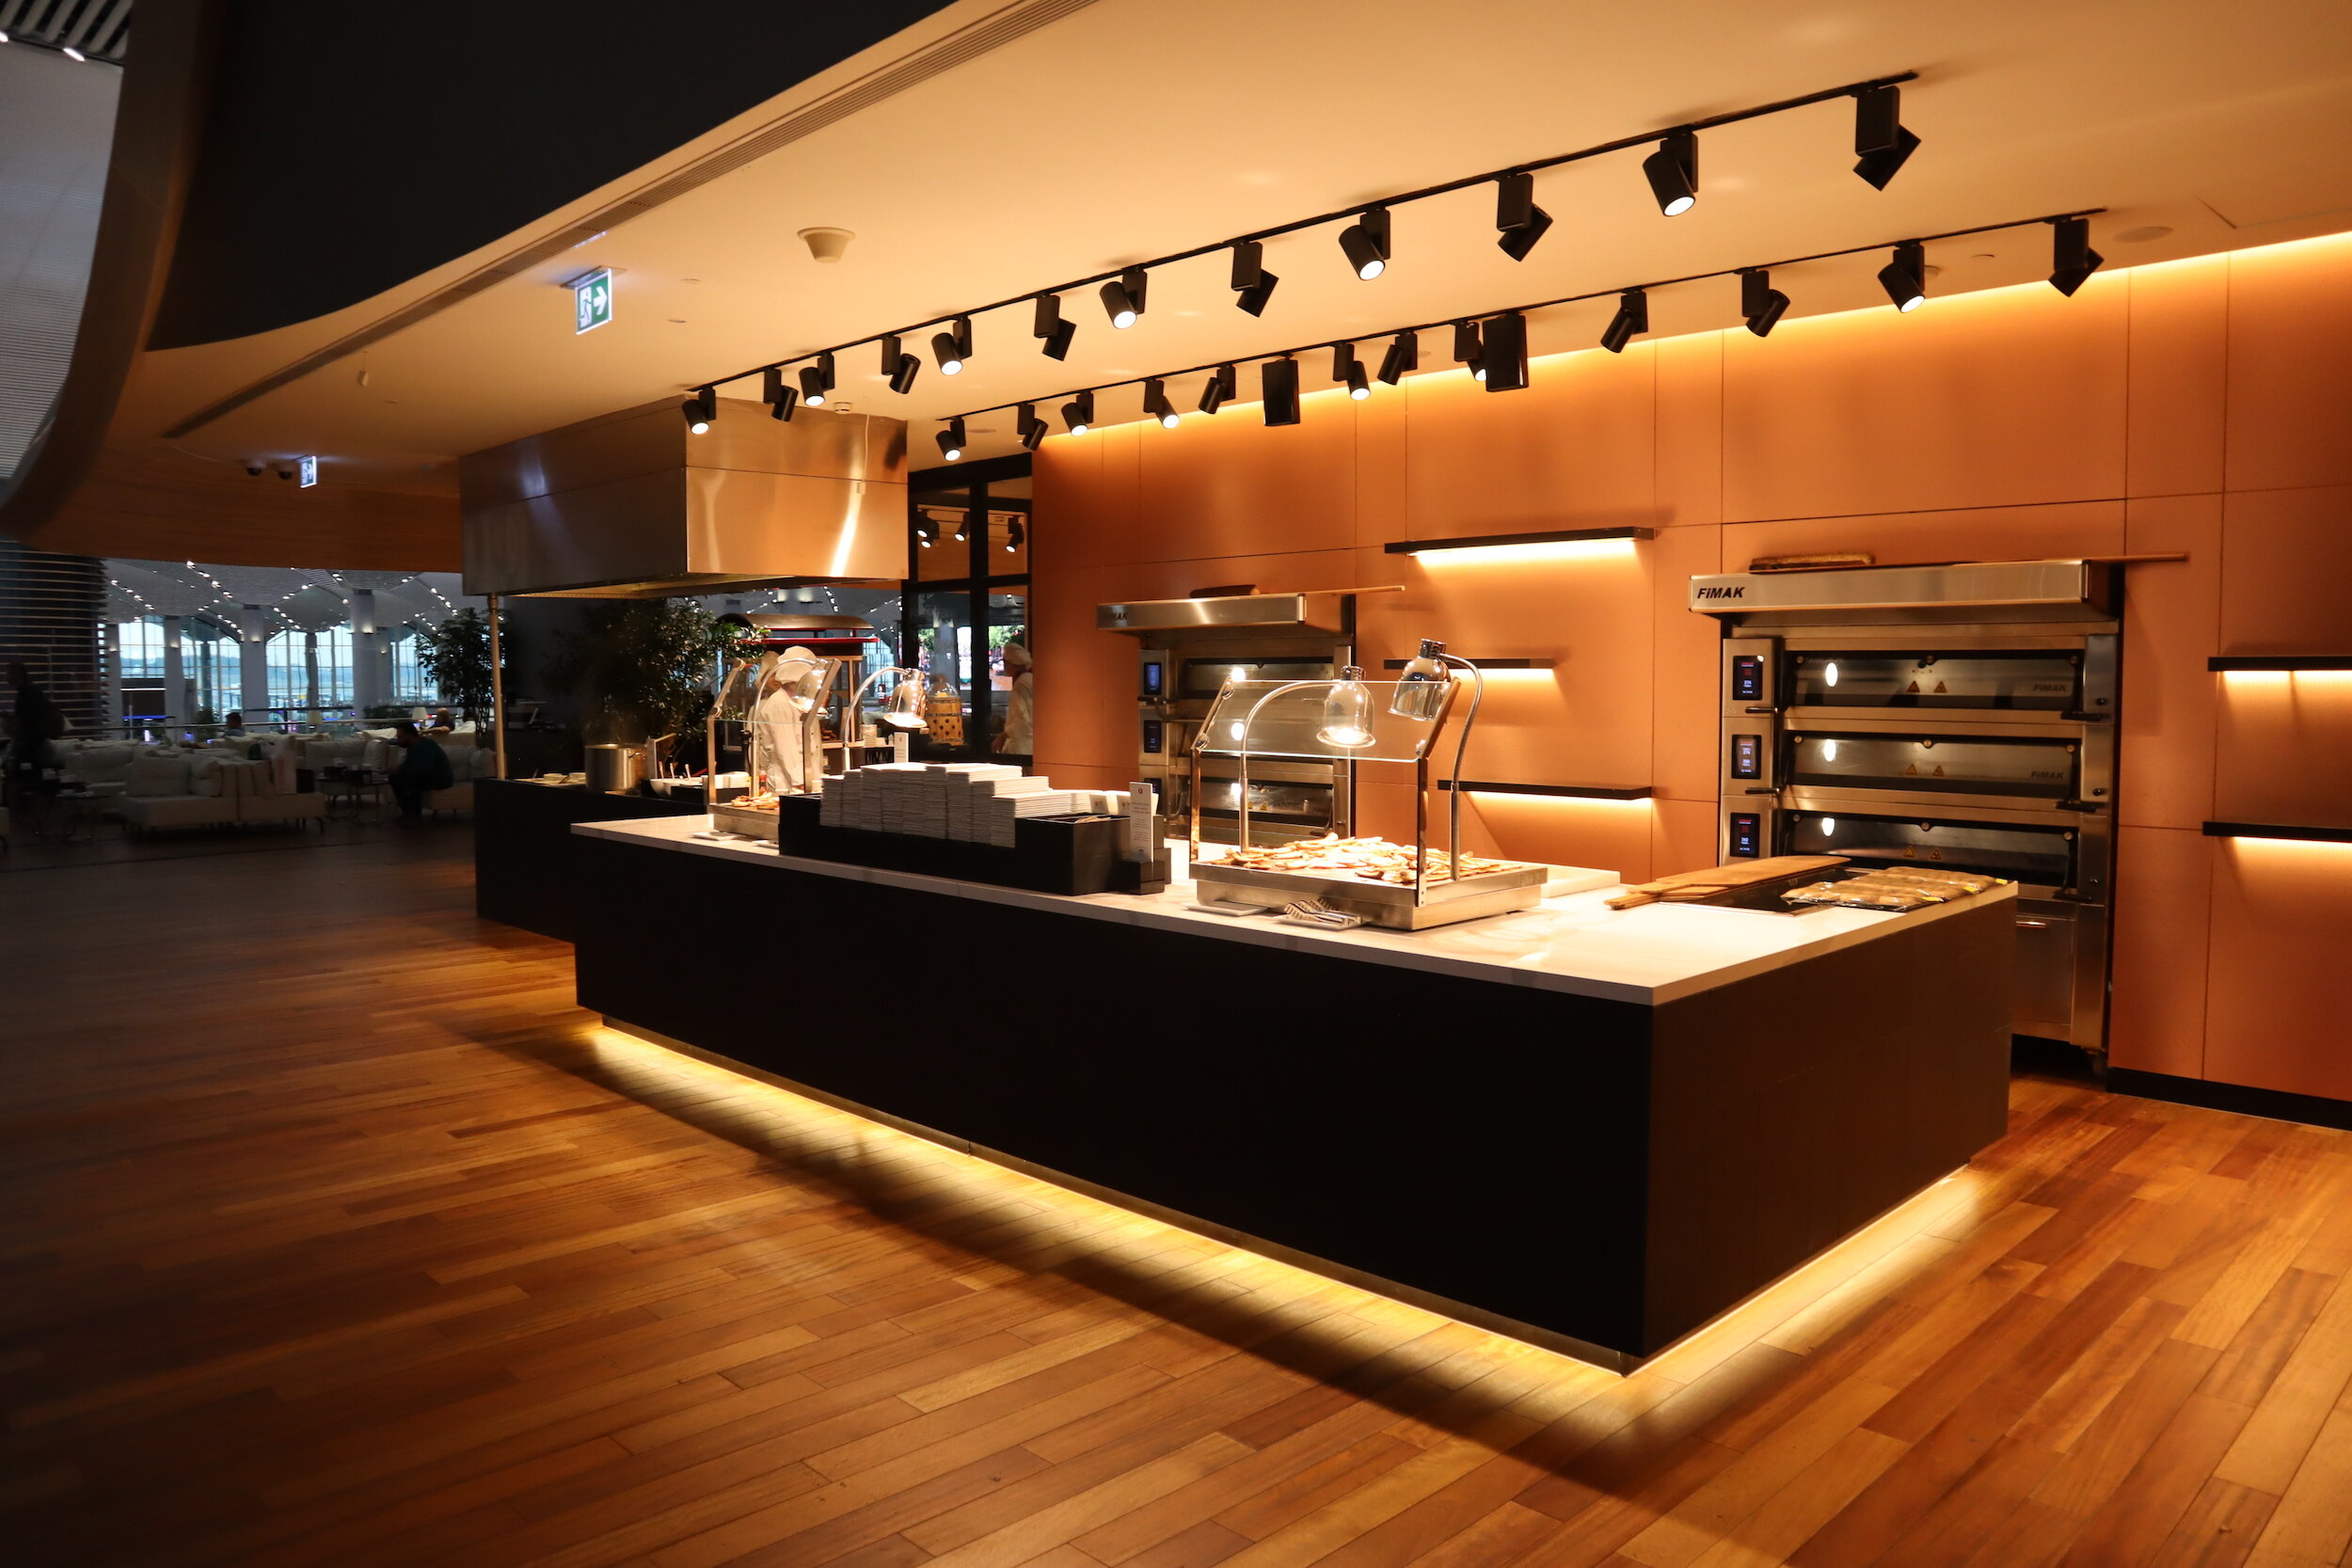 Turkish Airlines Business Lounge Istanbul – Live cooking station